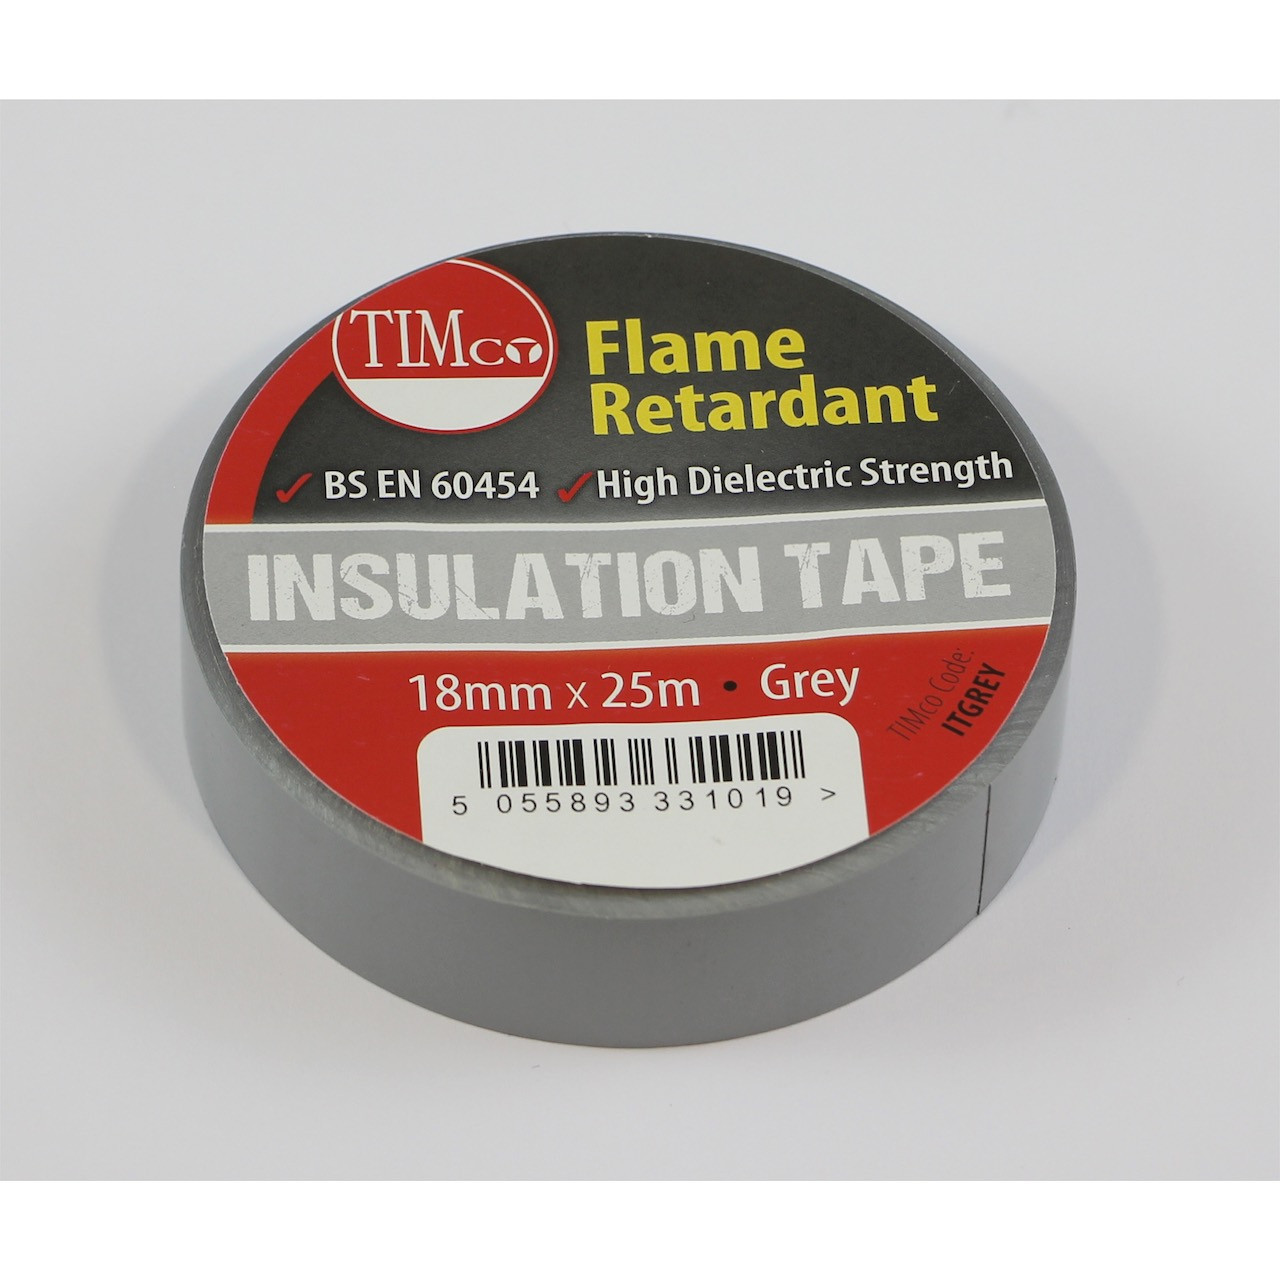 VARIOUS COLOURS TO CHOOSE FROM! PACK OF 10 TIMCO INSULATION TAPE